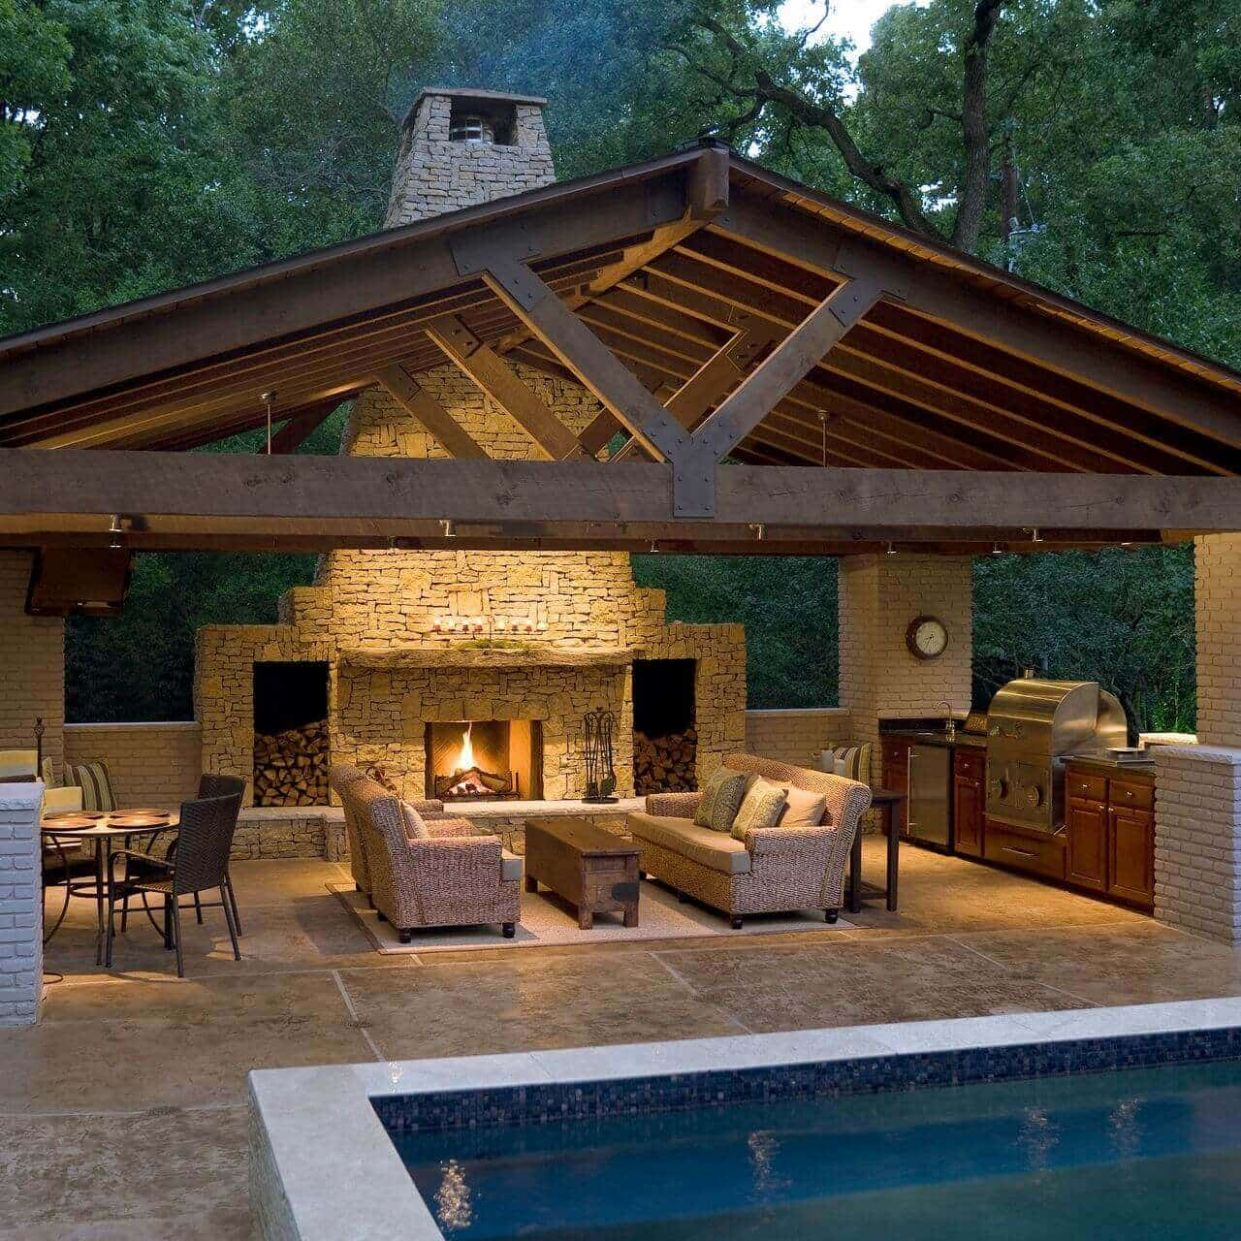 Best Pool House Design Ideas That Complete Your Dream - The ...